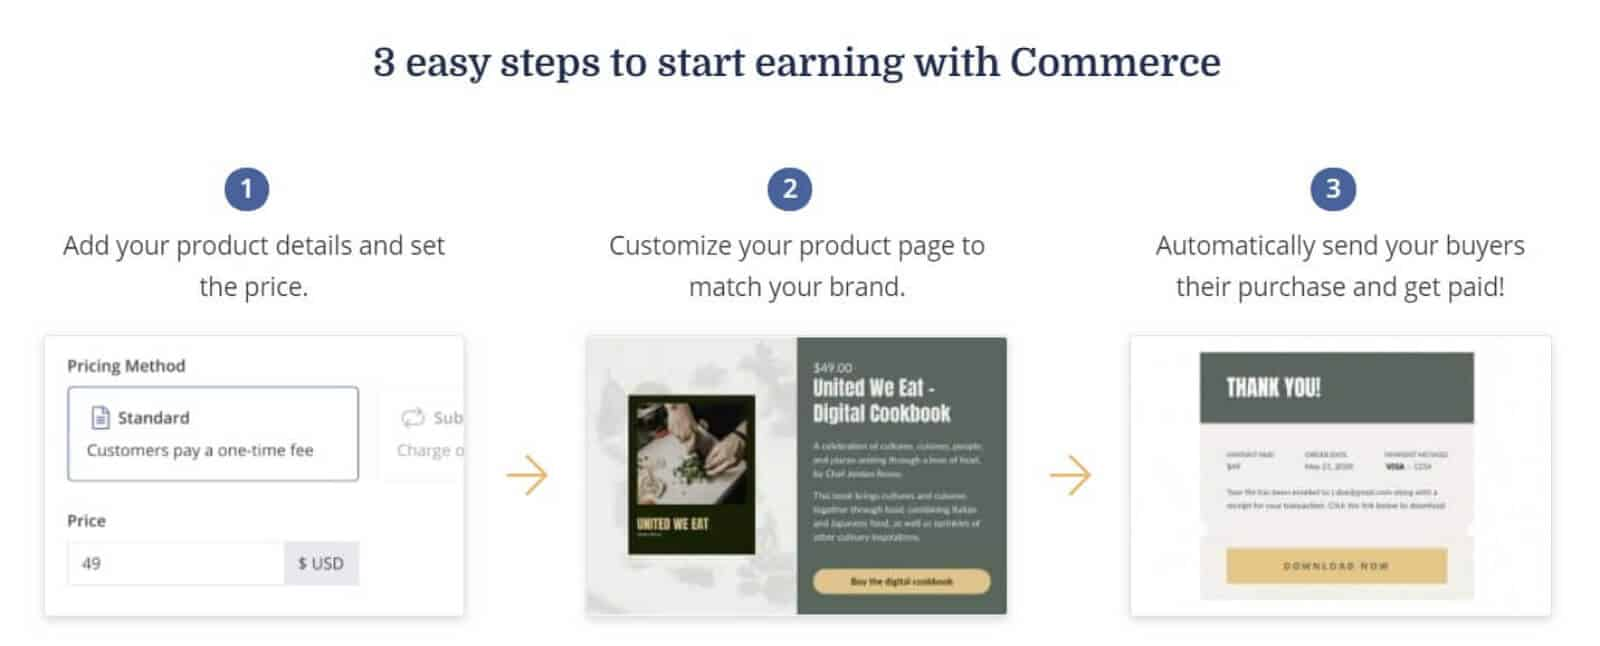 You can use ConvertKit to create a sales page for your product